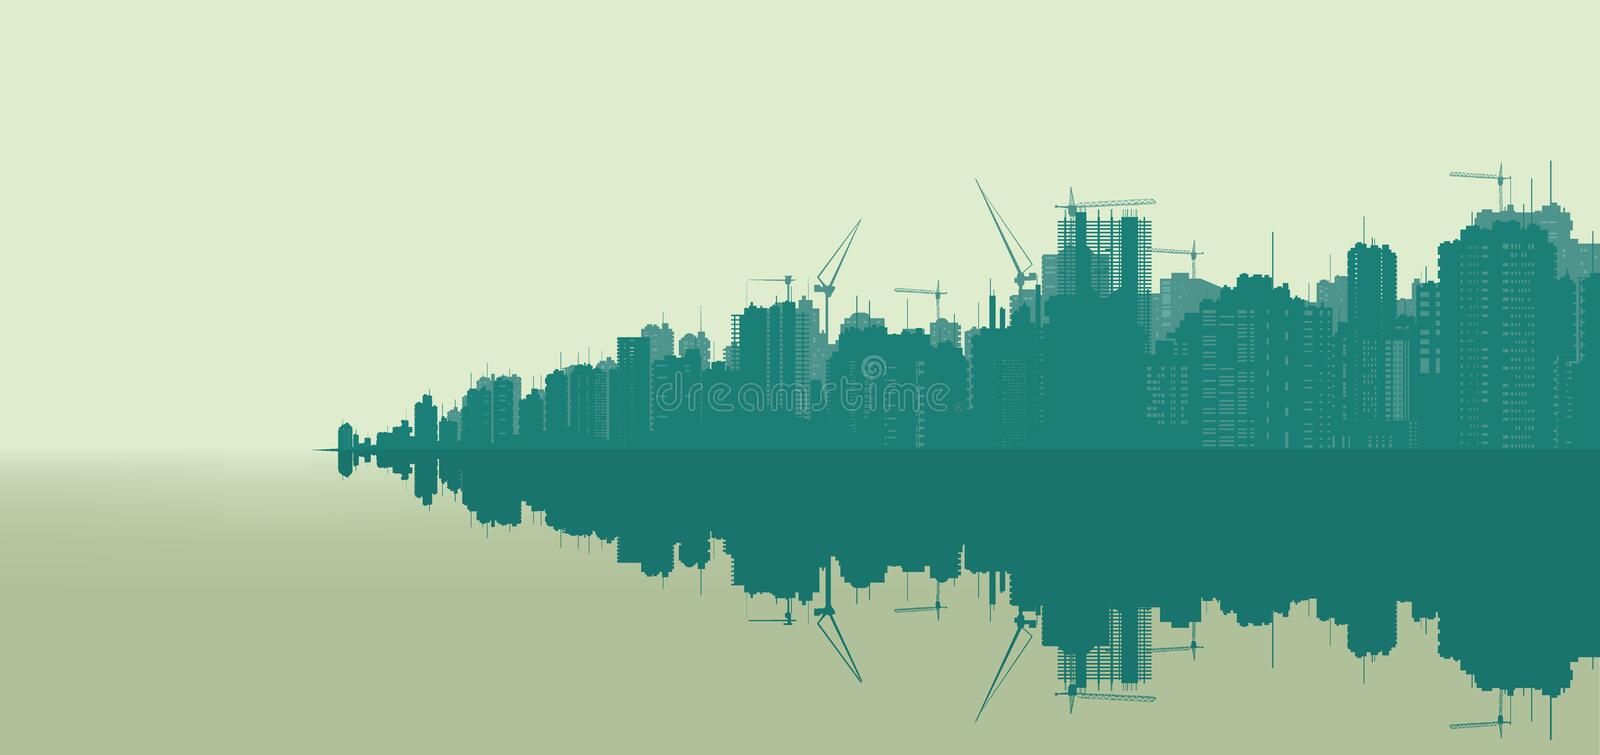 landscape of a very large city. vector illustration